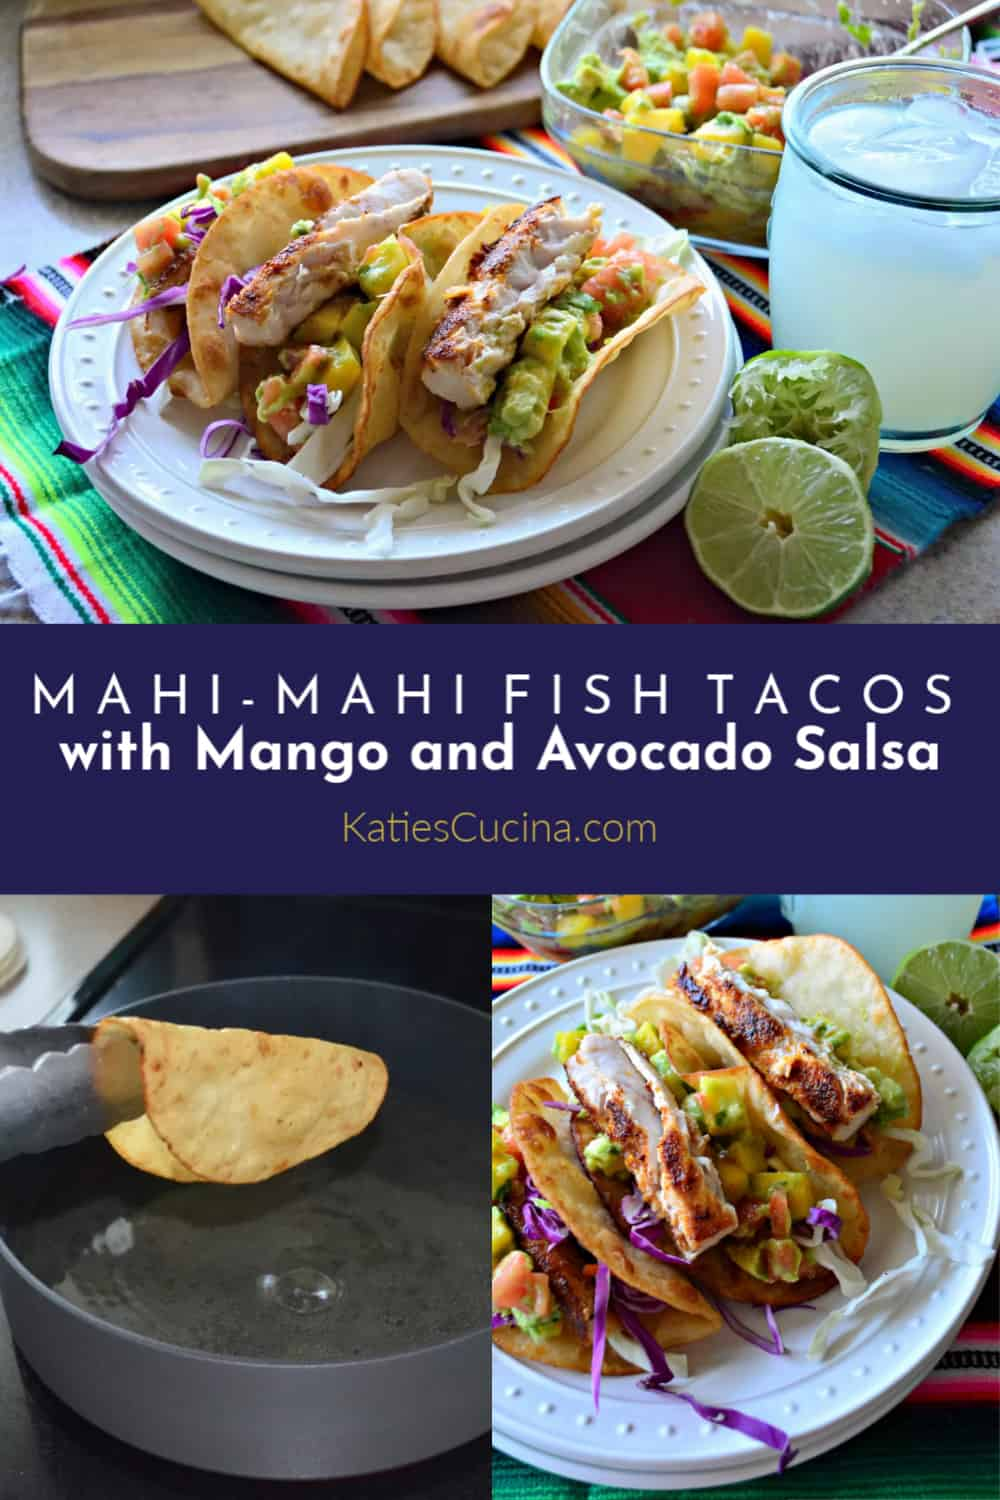 Mahi-Mahi Fish Tacos with Mango and Avocado Salsa collage with text